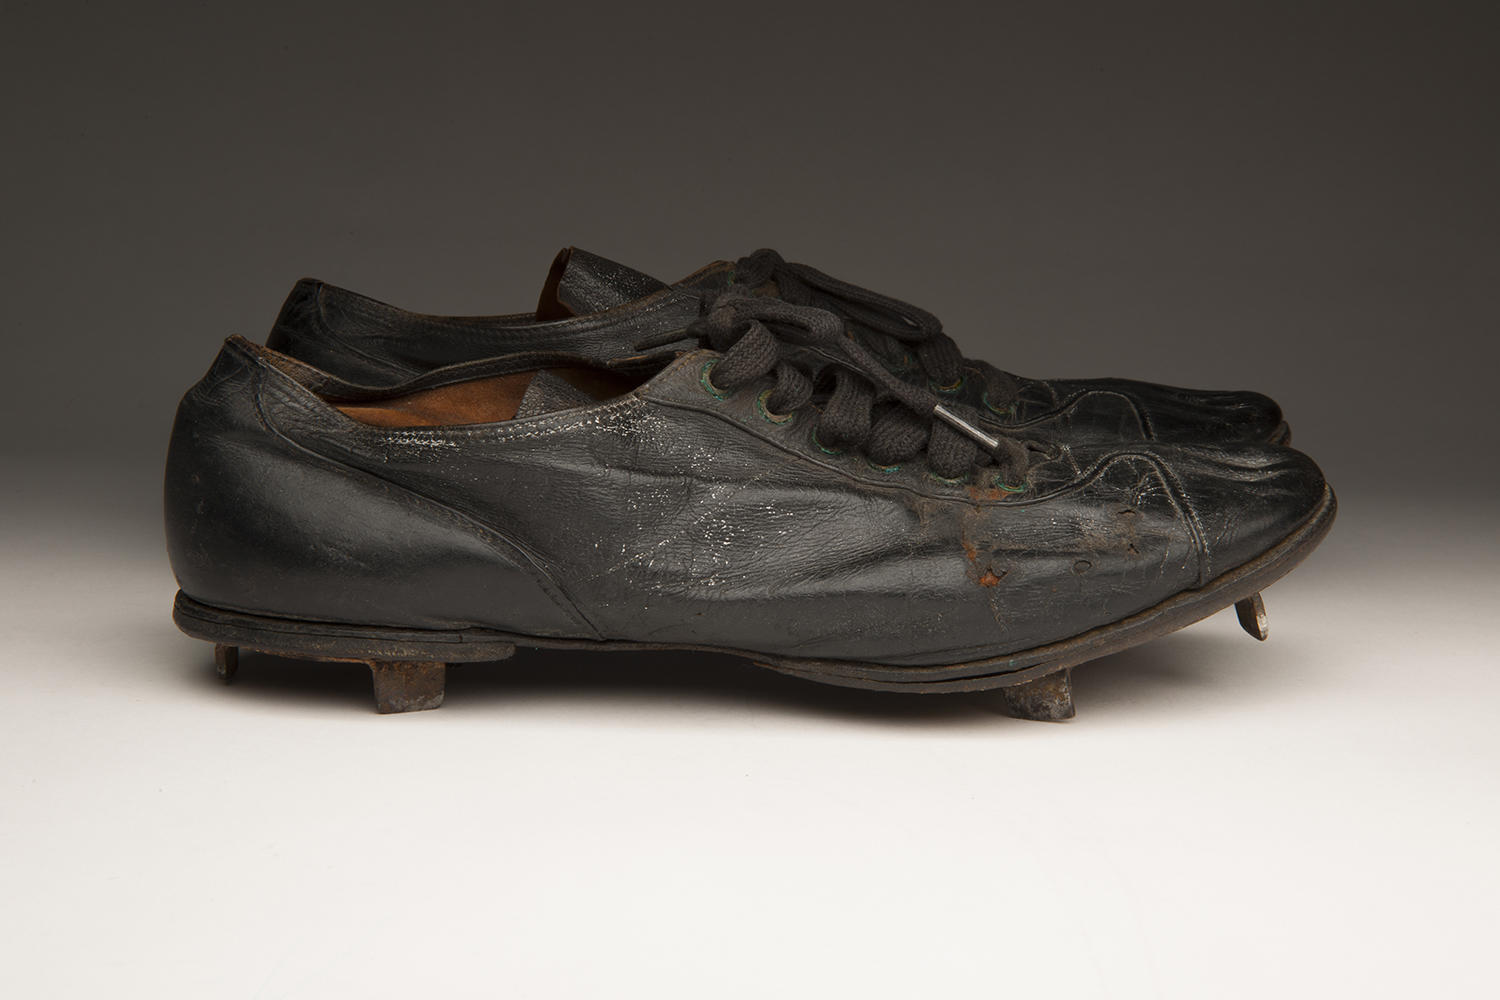 These baseball spikes worn by Cool Papa Bell are now preserved in the National Baseball Hall of Fame's collection. (Milo Stewart Jr. / National Baseball Hall of Fame)